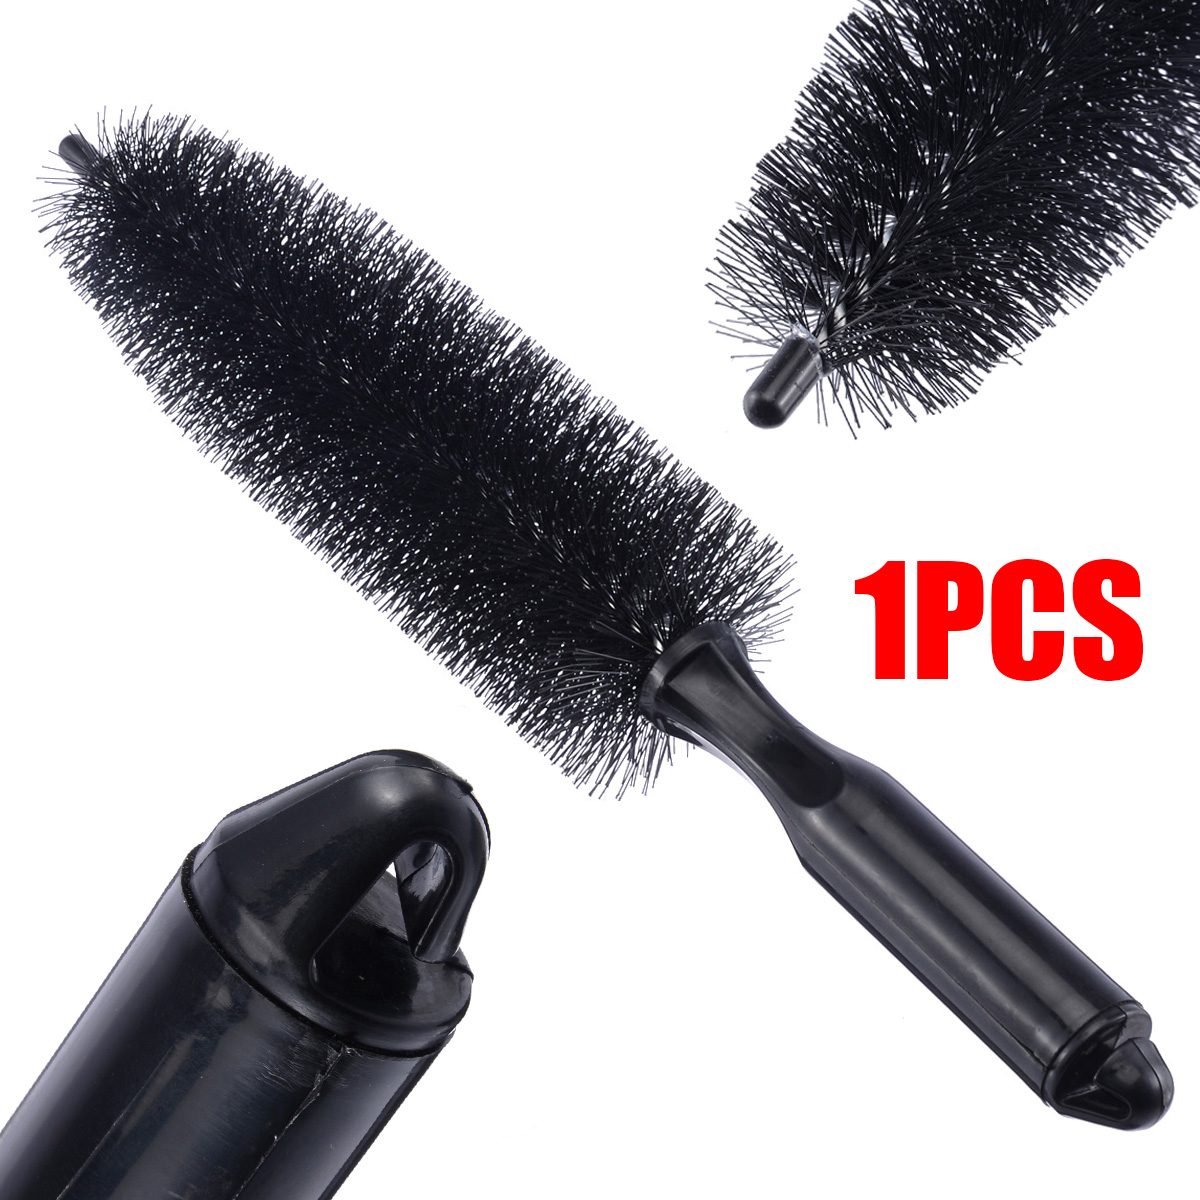 Image 3 - 1 pc Black Car Wheel Tire Rim Hub Scrub Brush Car Styling Vehicle Washing Cleaning Tool-in Sponges, Cloths & Brushes from Automobiles & Motorcycles